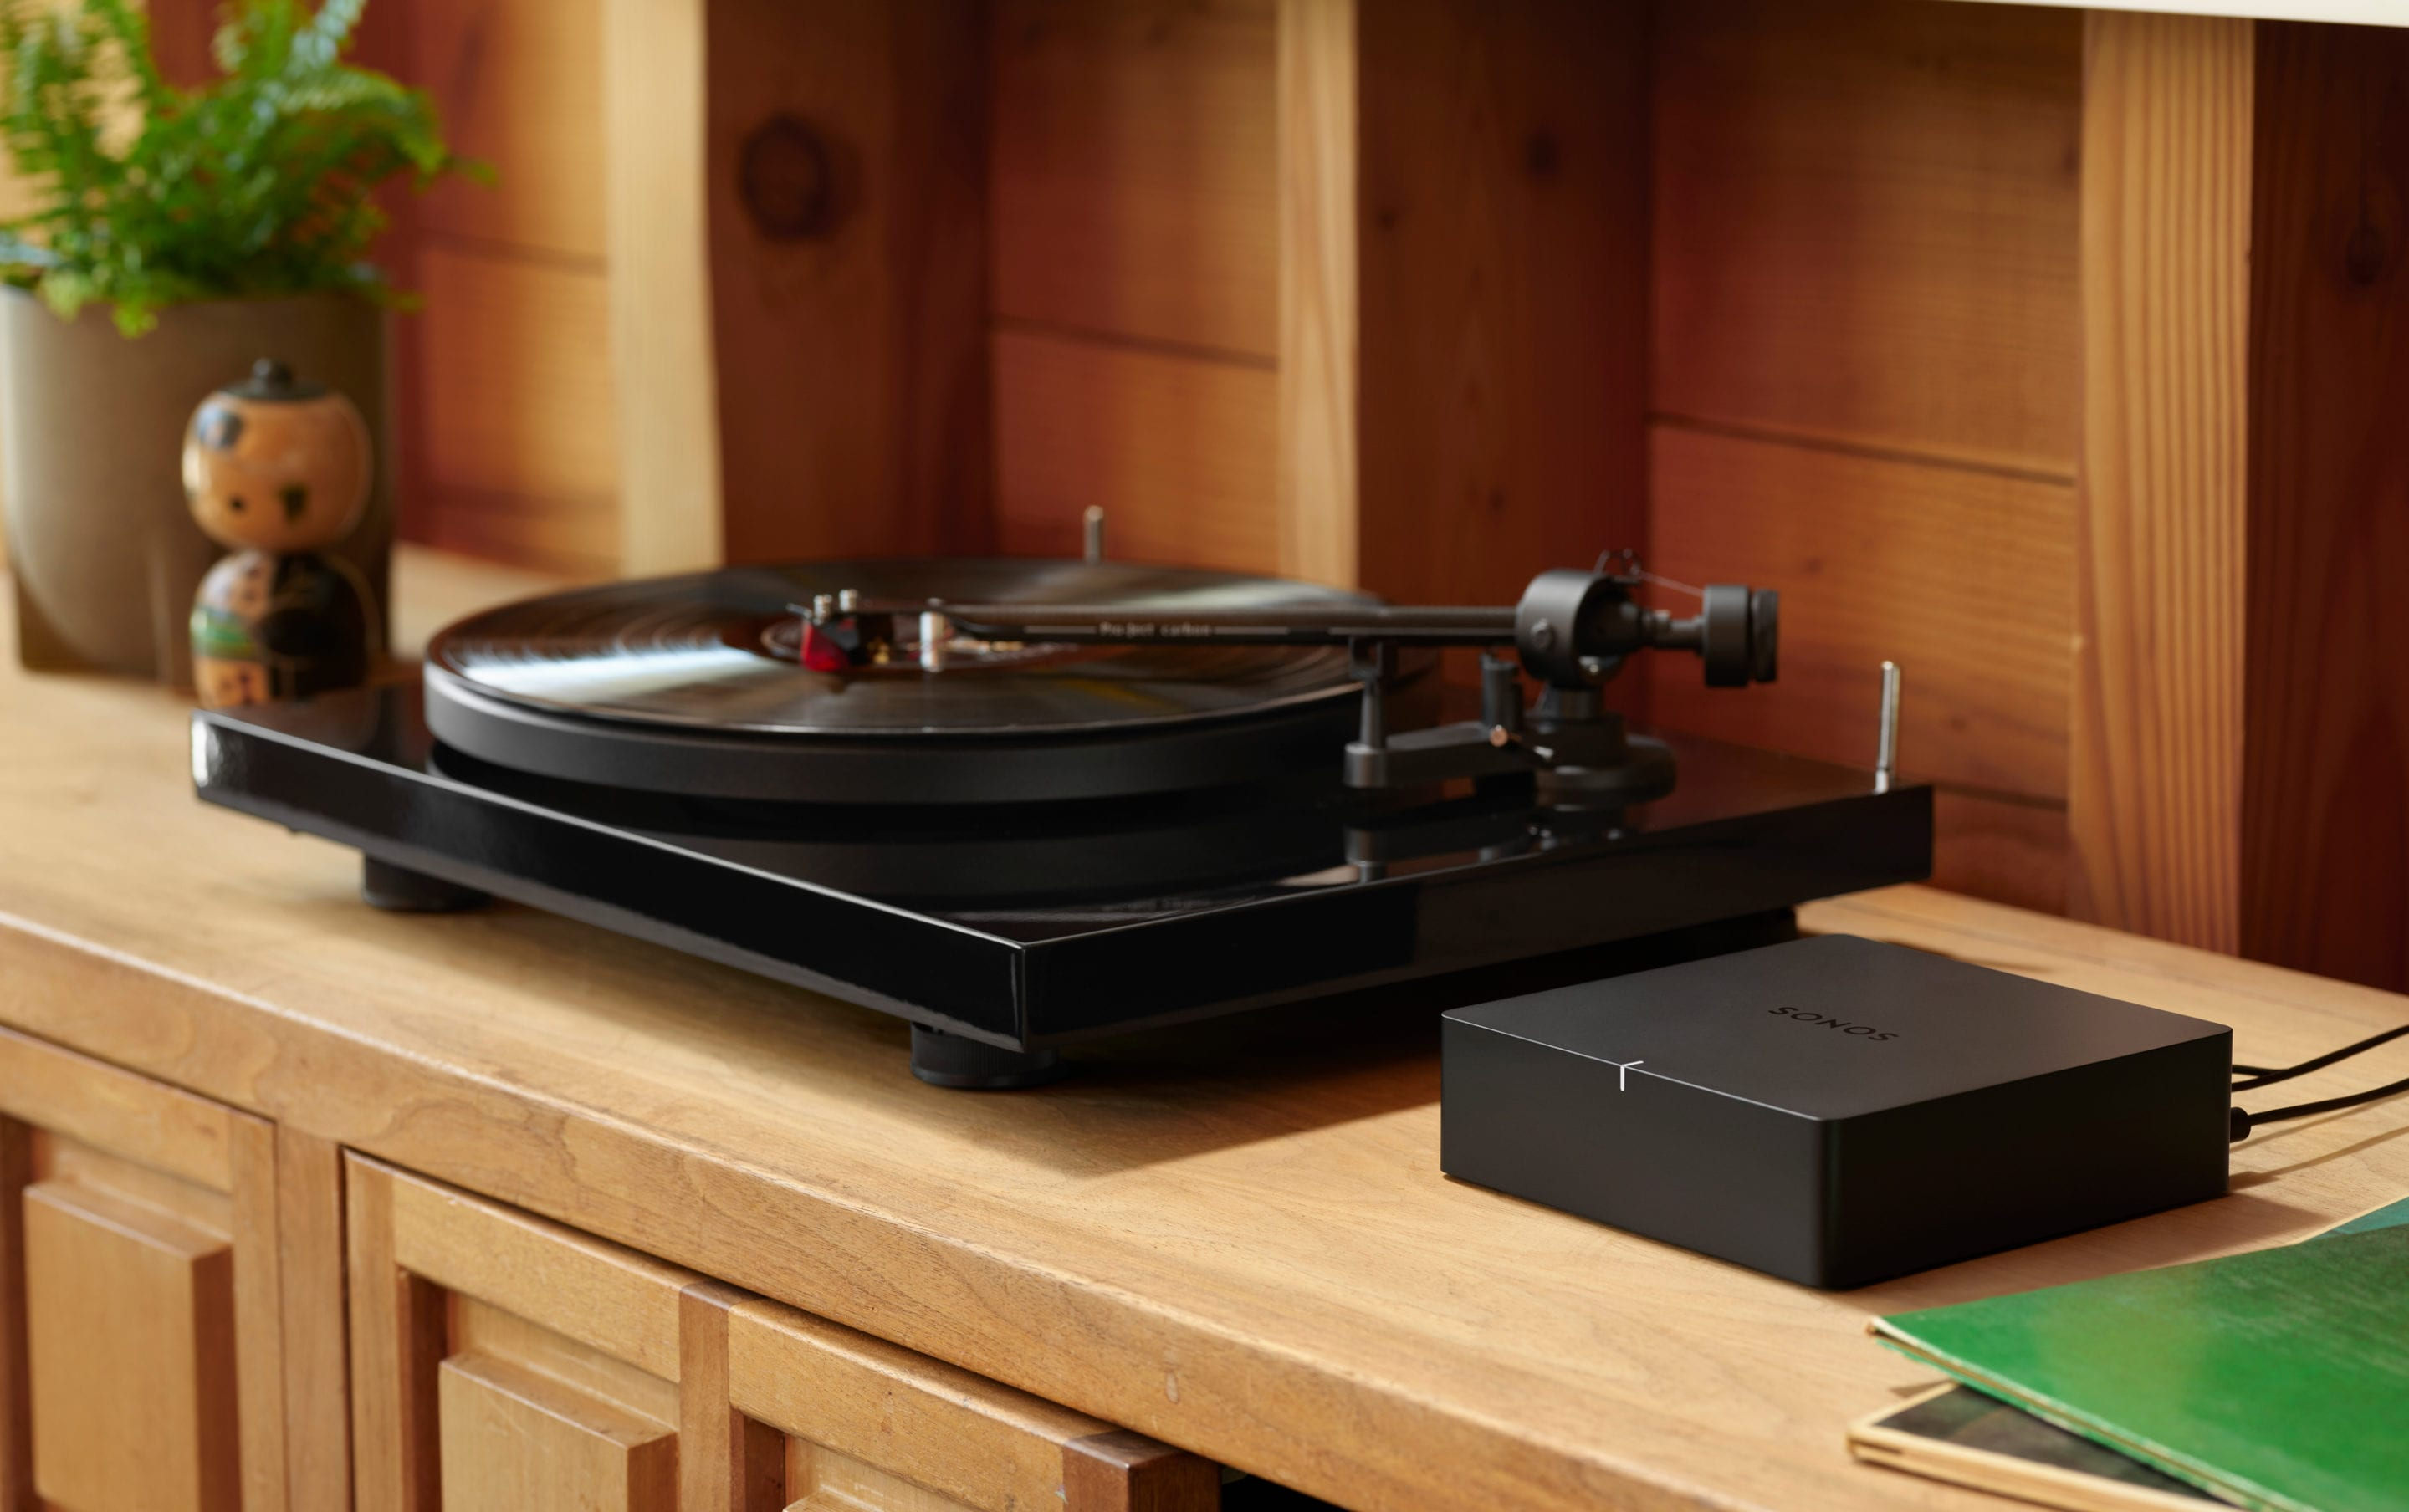 Sonos Connect to turntable